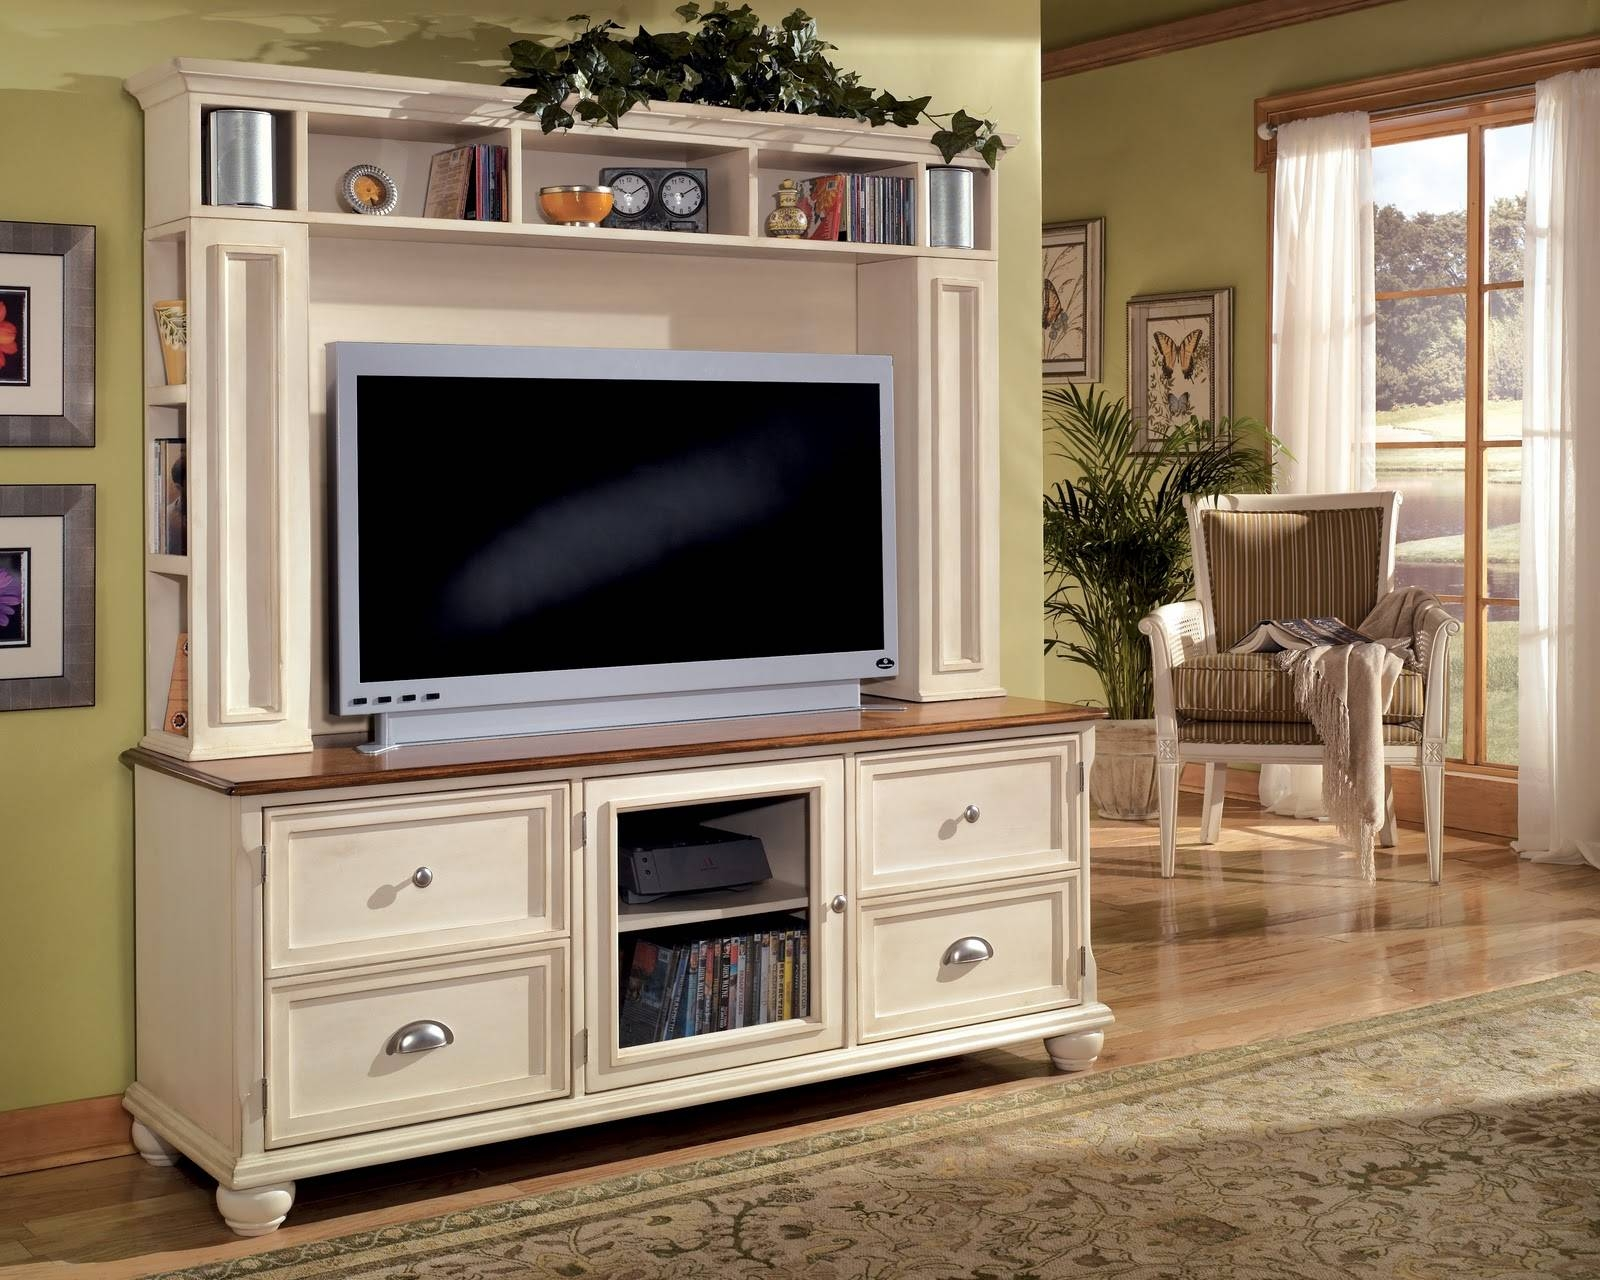 Furniture. White Wood French Country Style Big Screen Tv Stand with regard to French Country Tv Stands (Image 7 of 15)